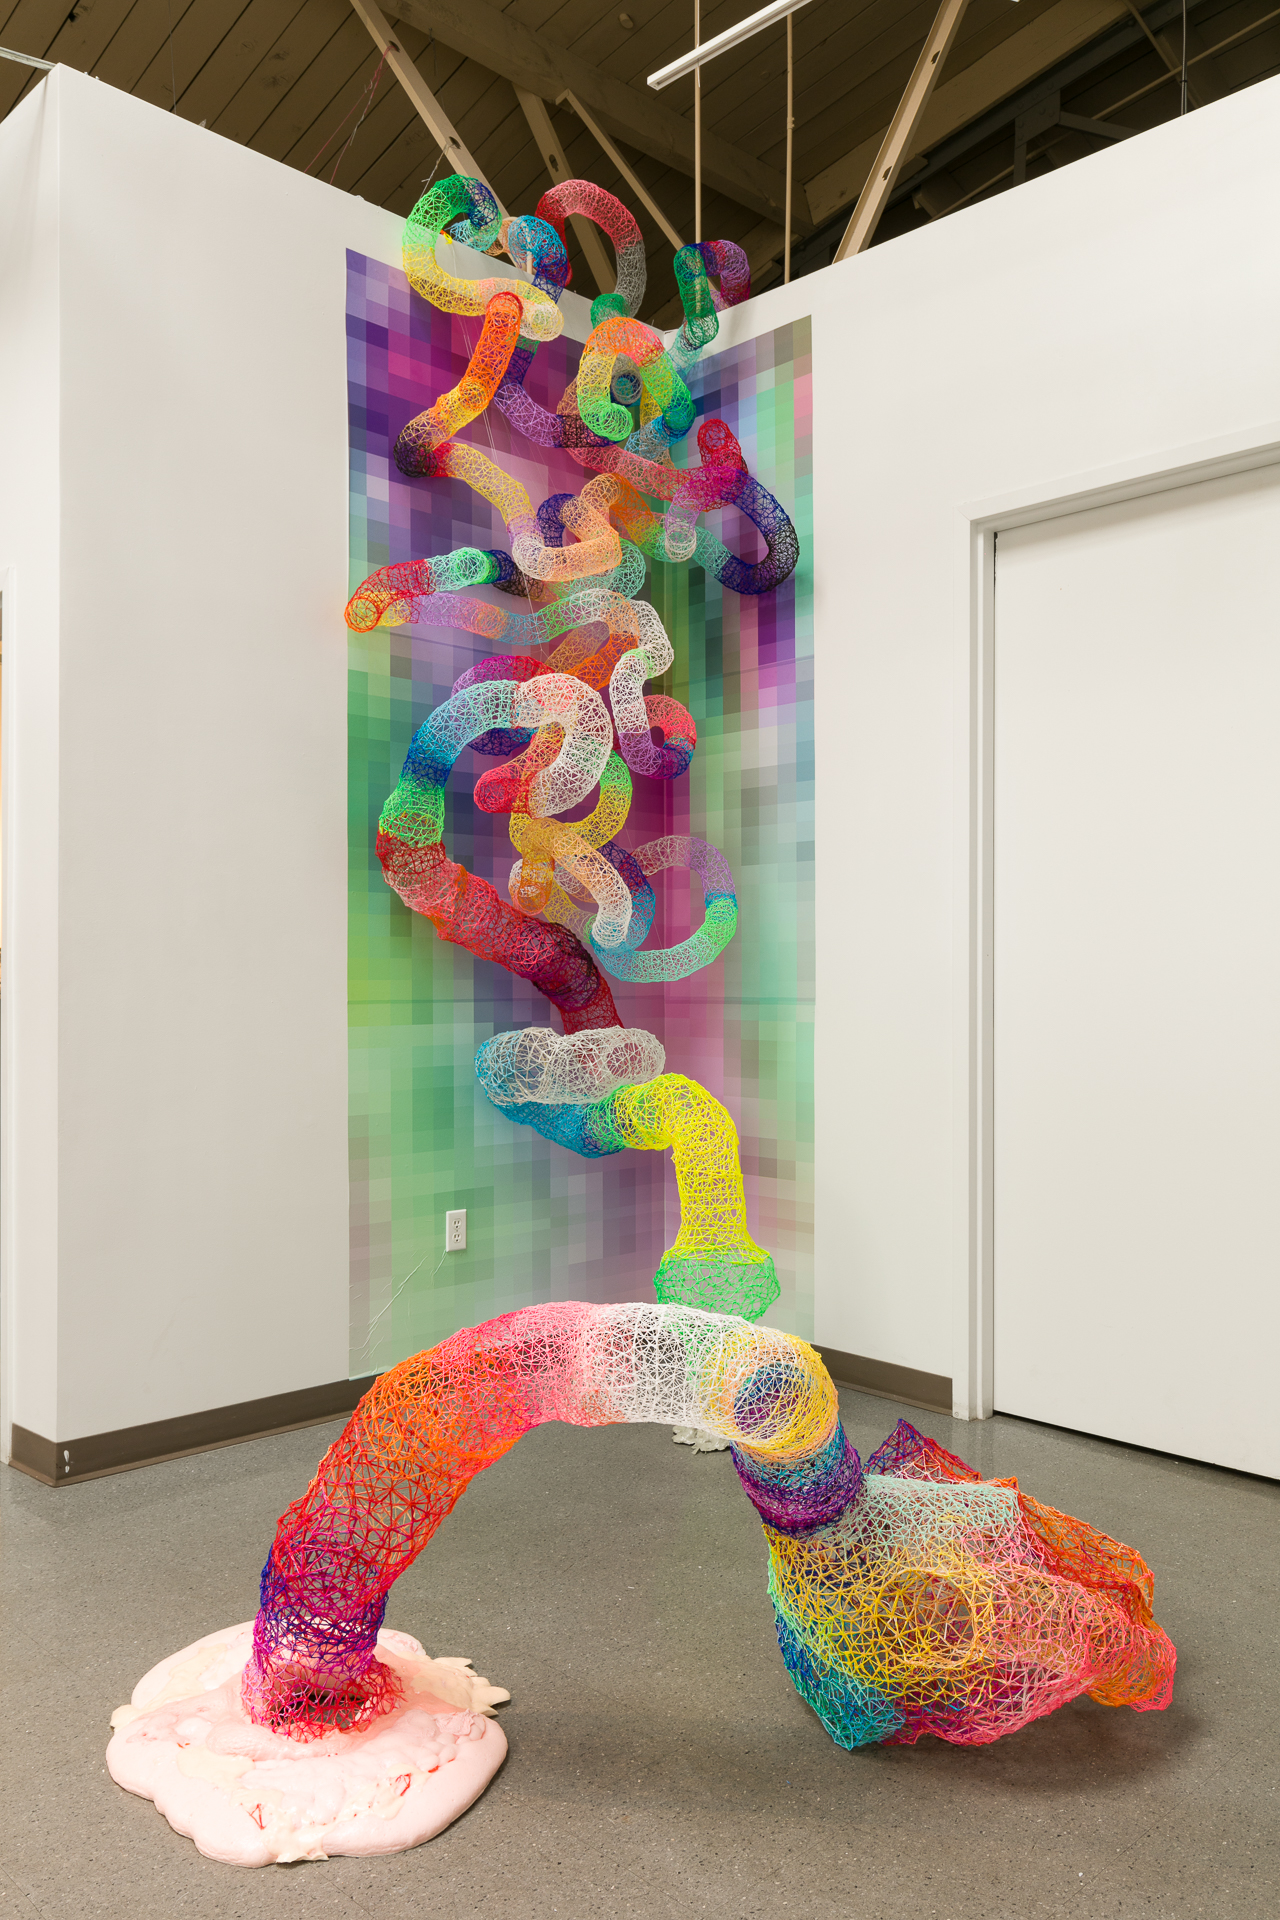 "'System Virtue' 2018, 132"" x 72"" x 60"" ABS filament, Digital Print on Adhesive Vinyl, Flex Foam, Pigment  Installation part of 'Reclamation' 965 Gallery, 2018 Denver CO (Photo Wes Magyar)"